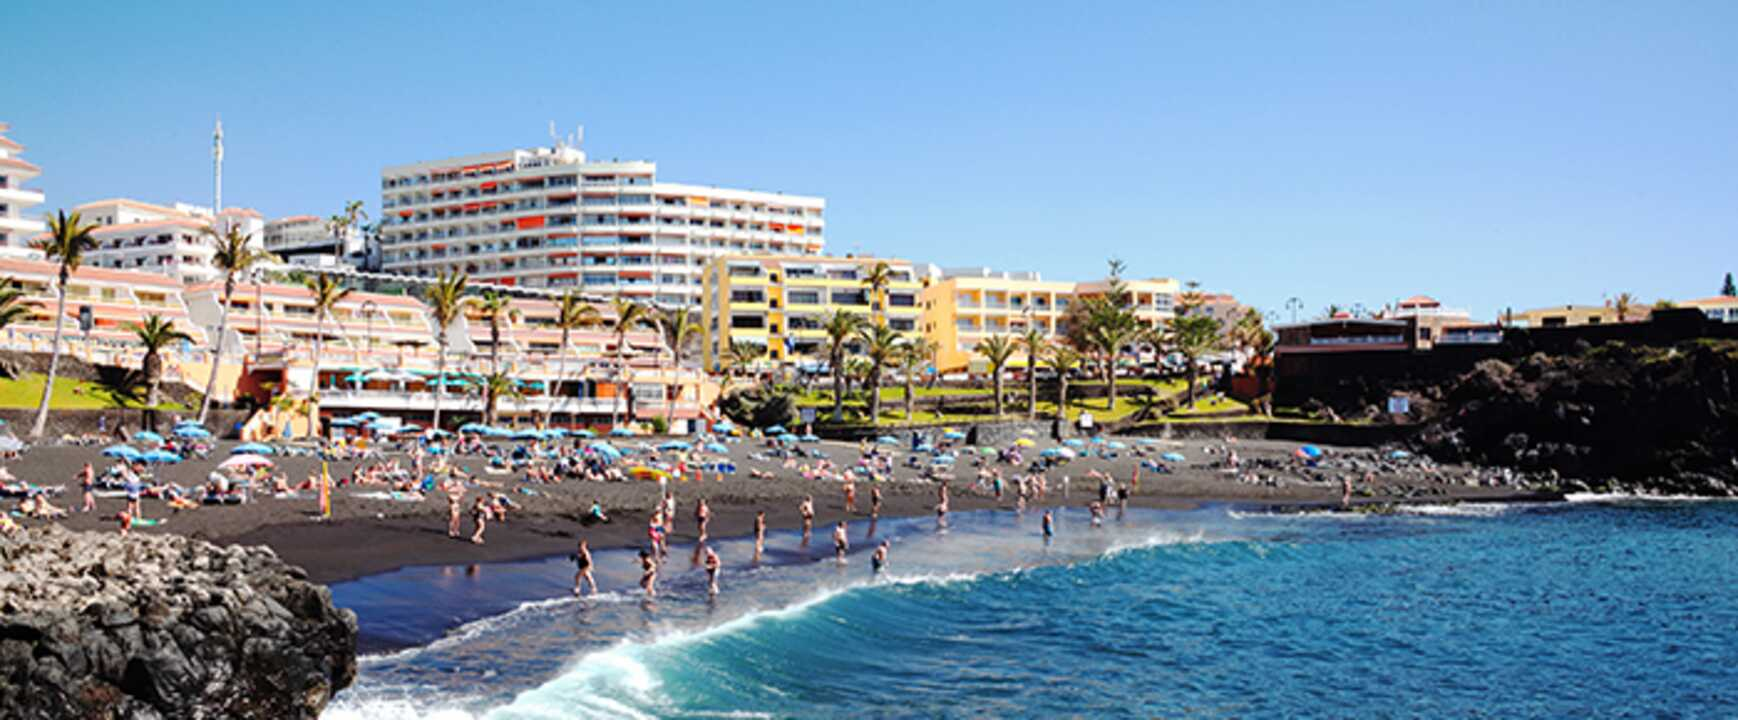 Cheap Holidays To Playa De La Arena On The Beach